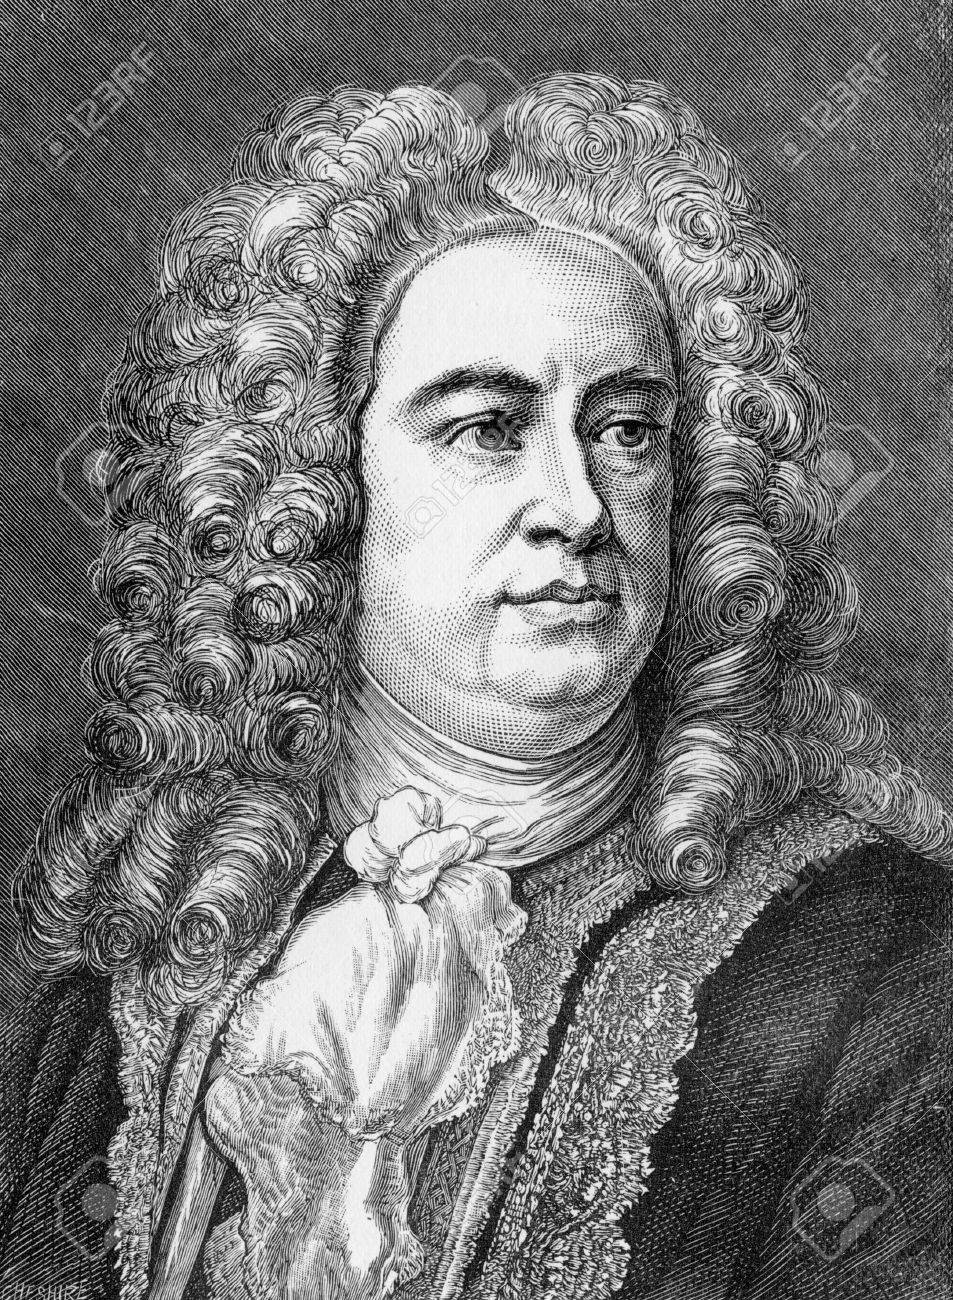 George Frideric Handel (German: Georg Friedrich Händel; 1685 - 1759) was a